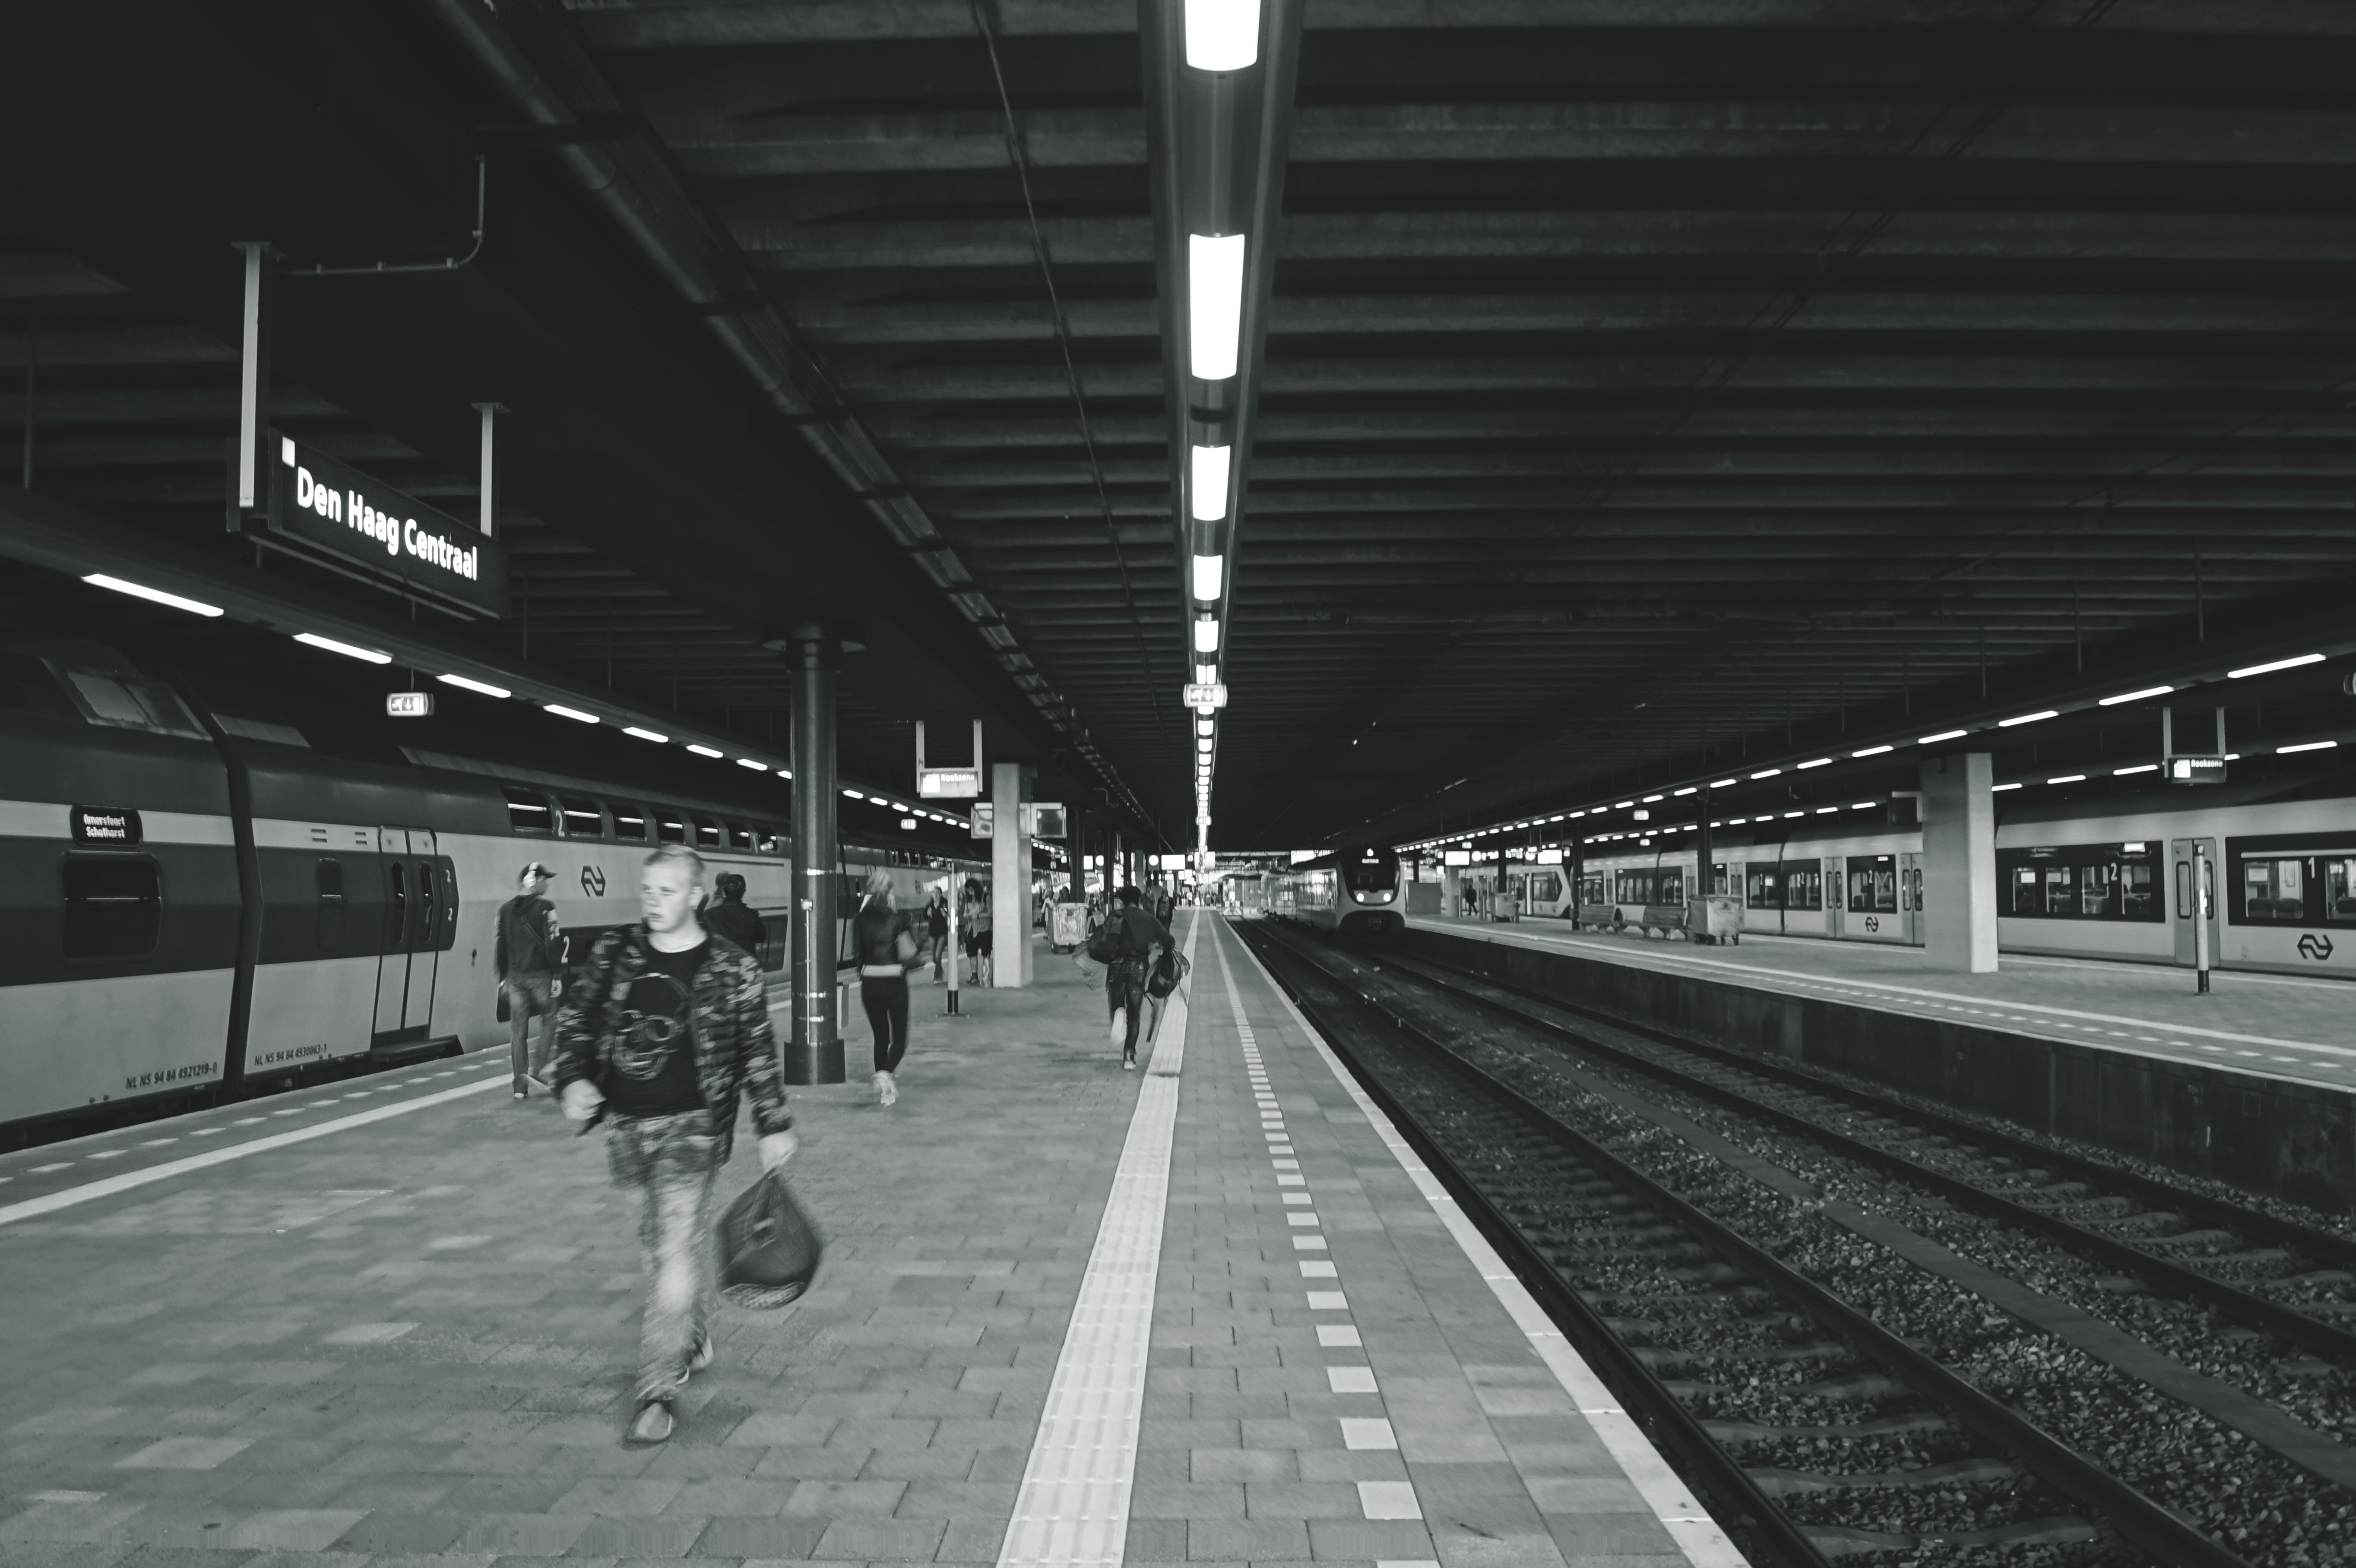 Grayscale Photography of Man Carrying Bag Walking on Subway Station